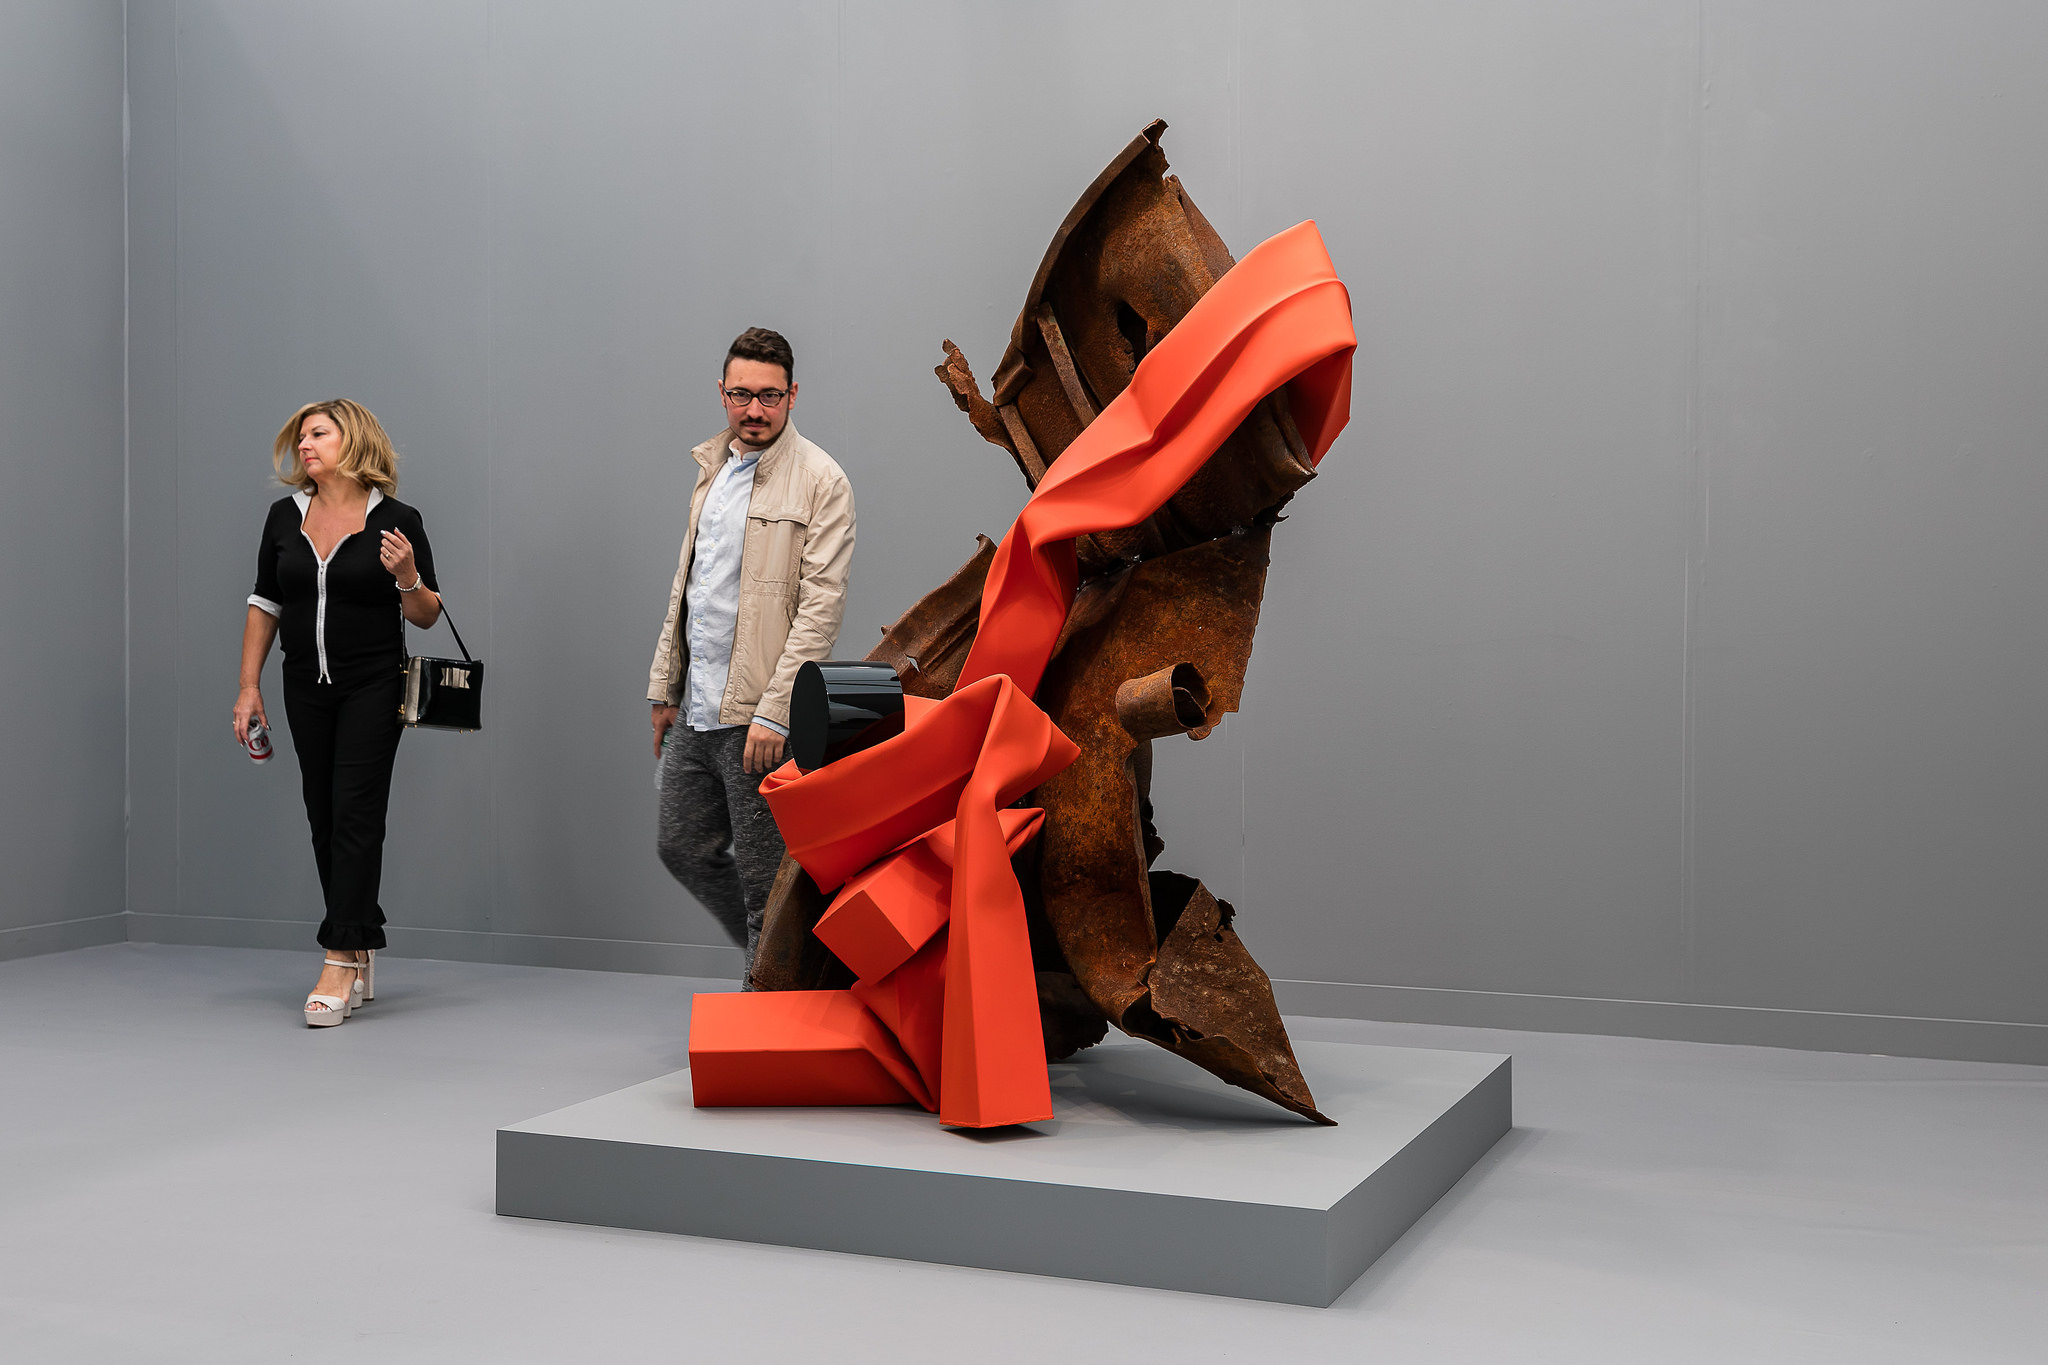 Sculpture by Carol Bove. Photo: Mark Blower / Frieze